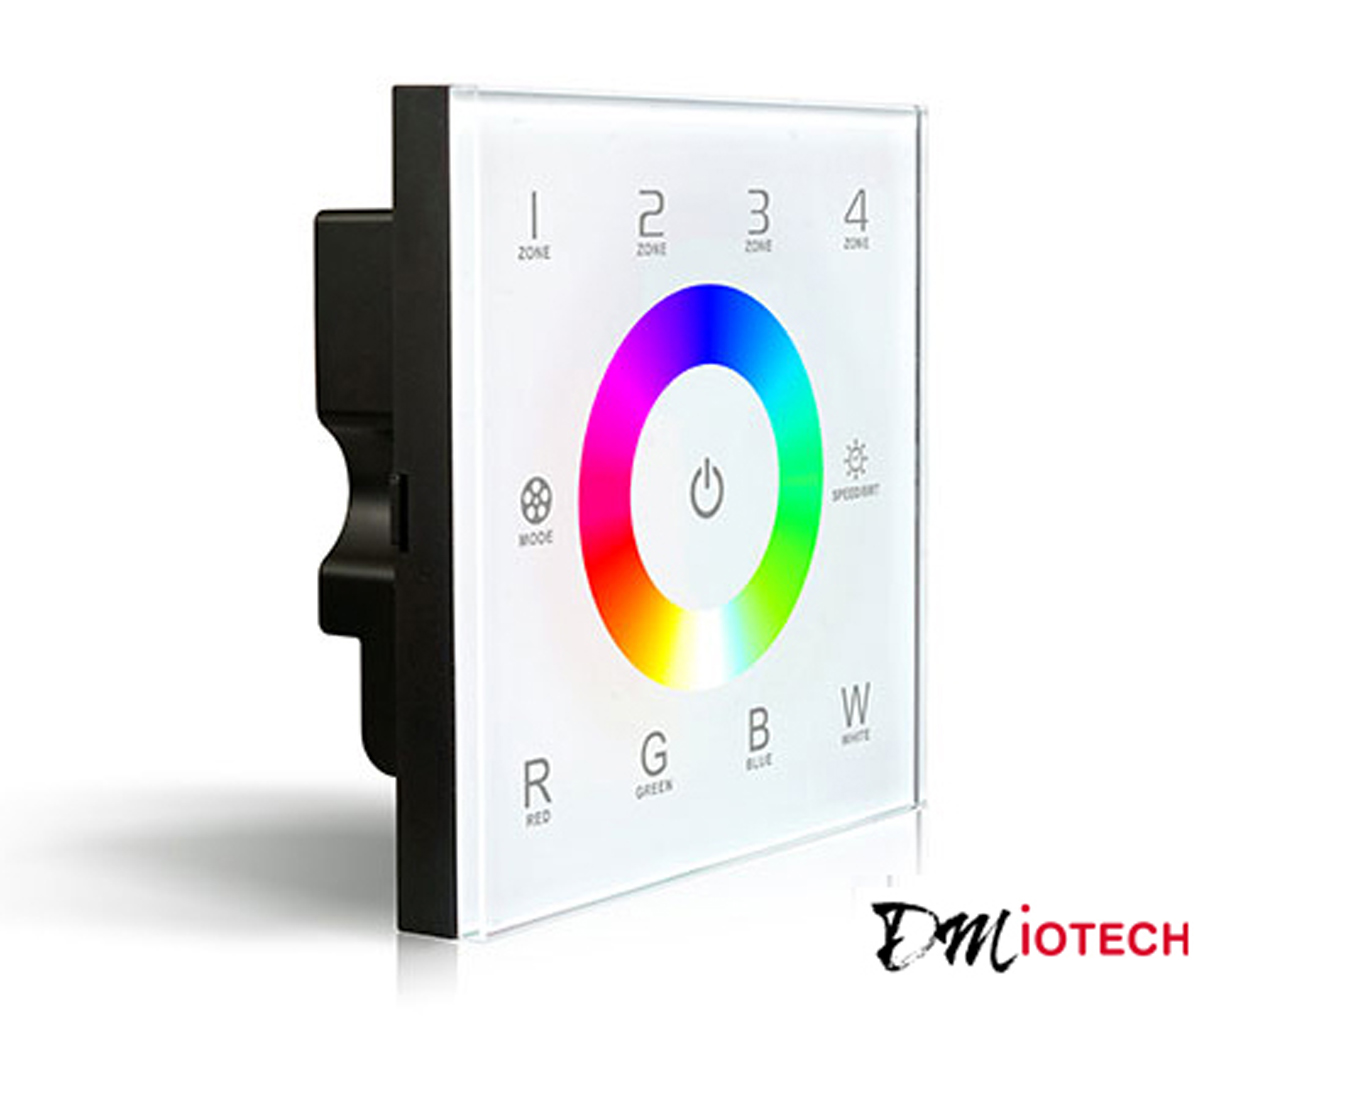 Wall Mount AC100V-240V Full Color Touch Panel RF Controller for LED Lighting 4 Zones